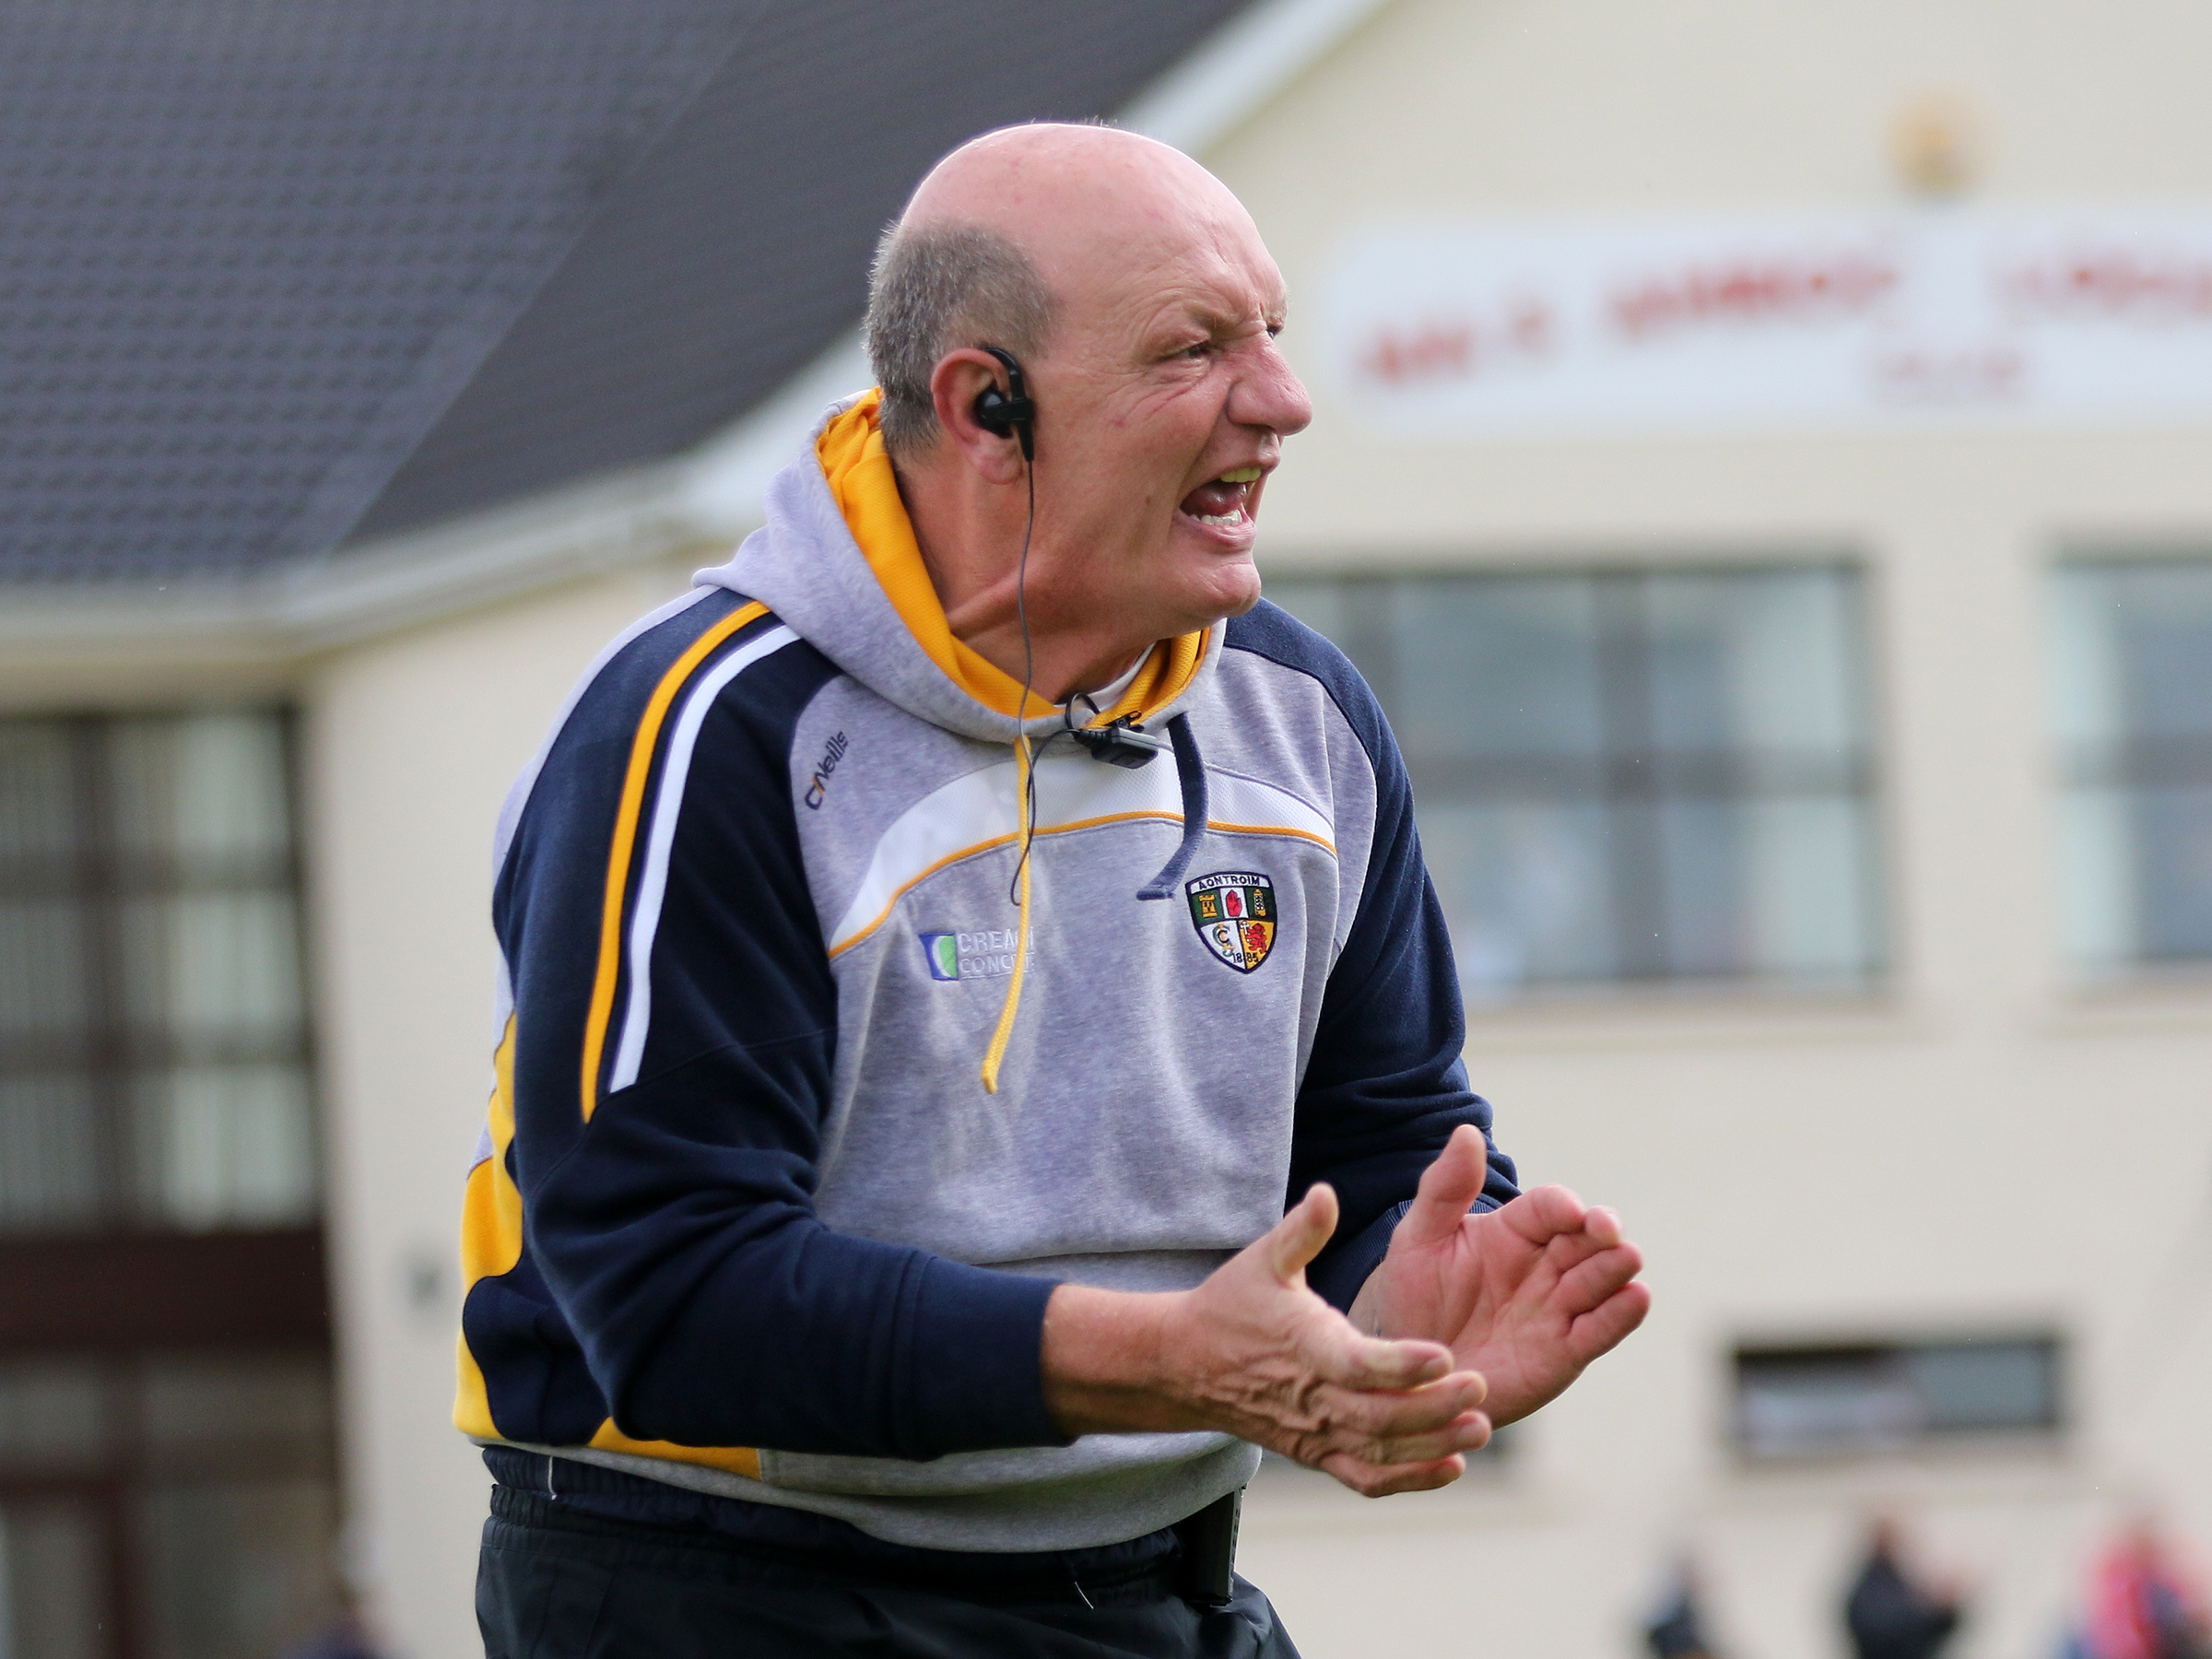 Antrim manager Terence \'Sambo\' McNaughton  has hit out at the changes to the Senior Football Championship which he feels will have a negative impact on Ulster hurling